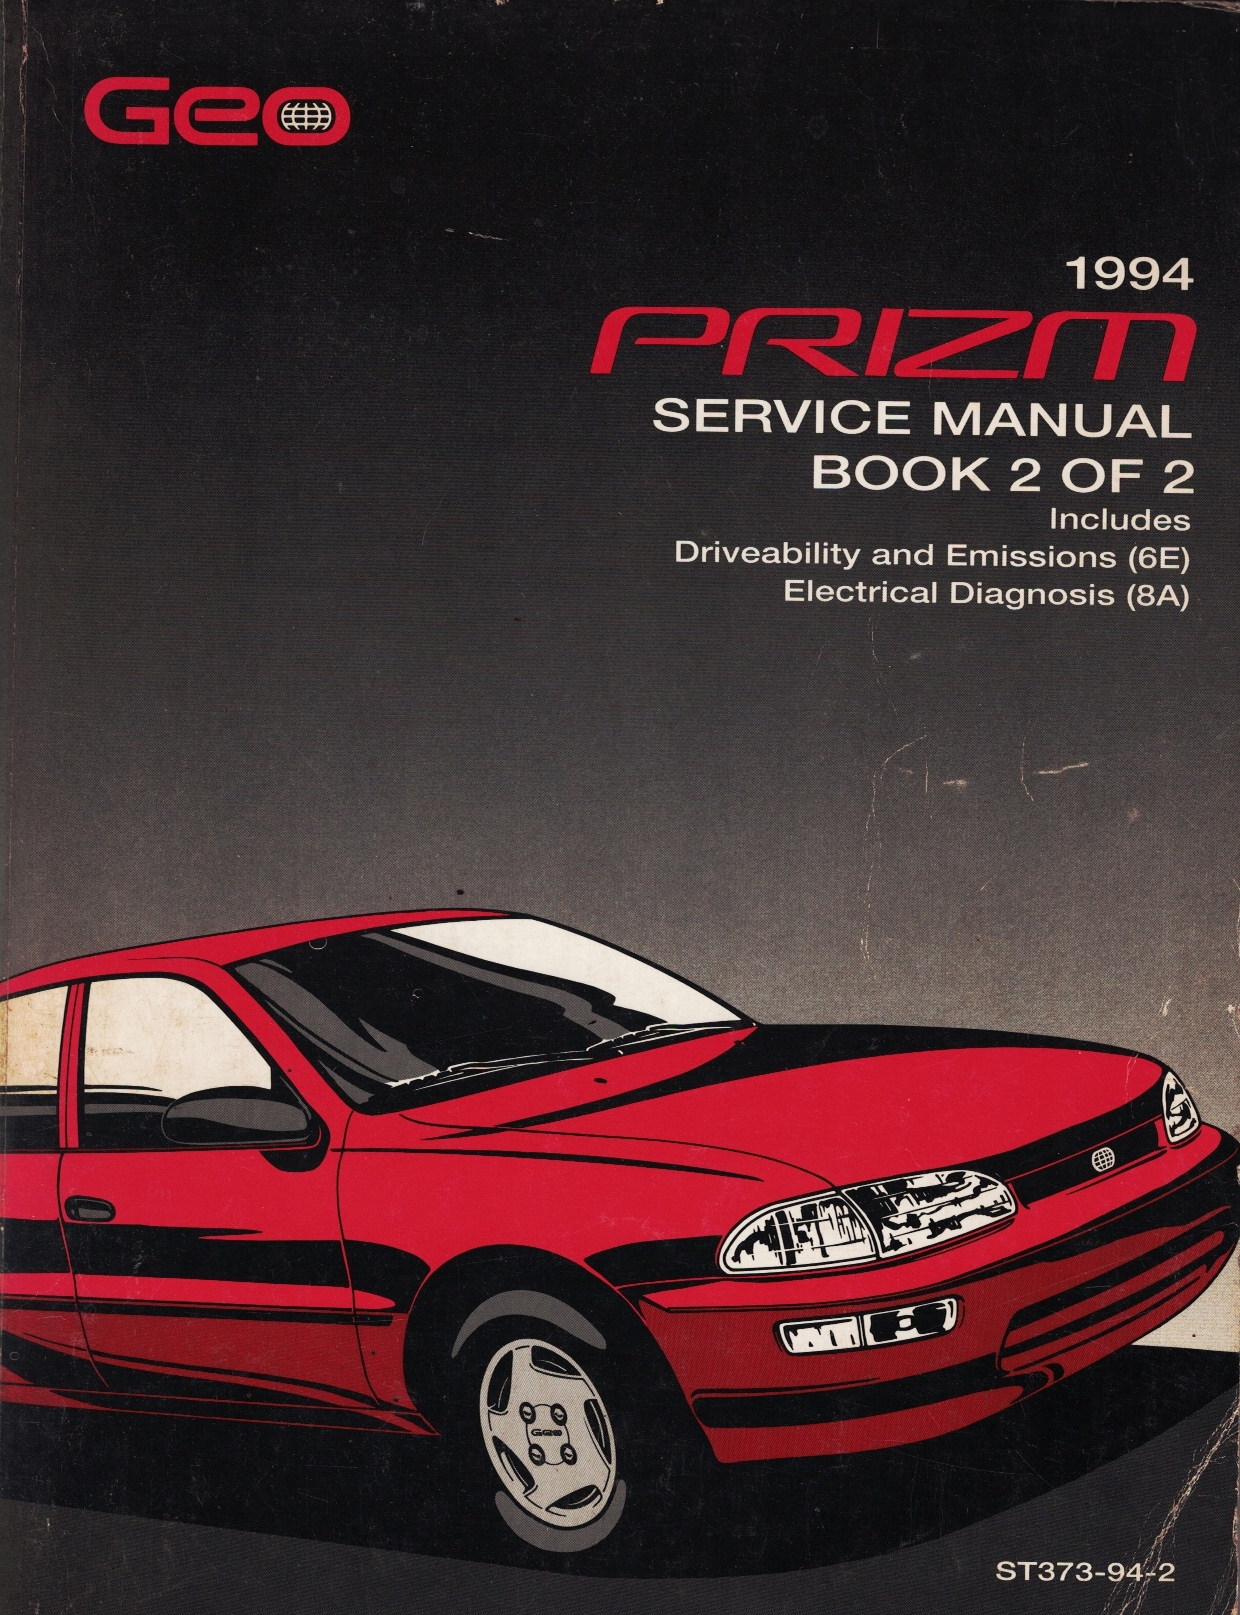 Image for 1994 Geo Prizm Service Manual Book 2 of 2 (Volume 2 ONLY)